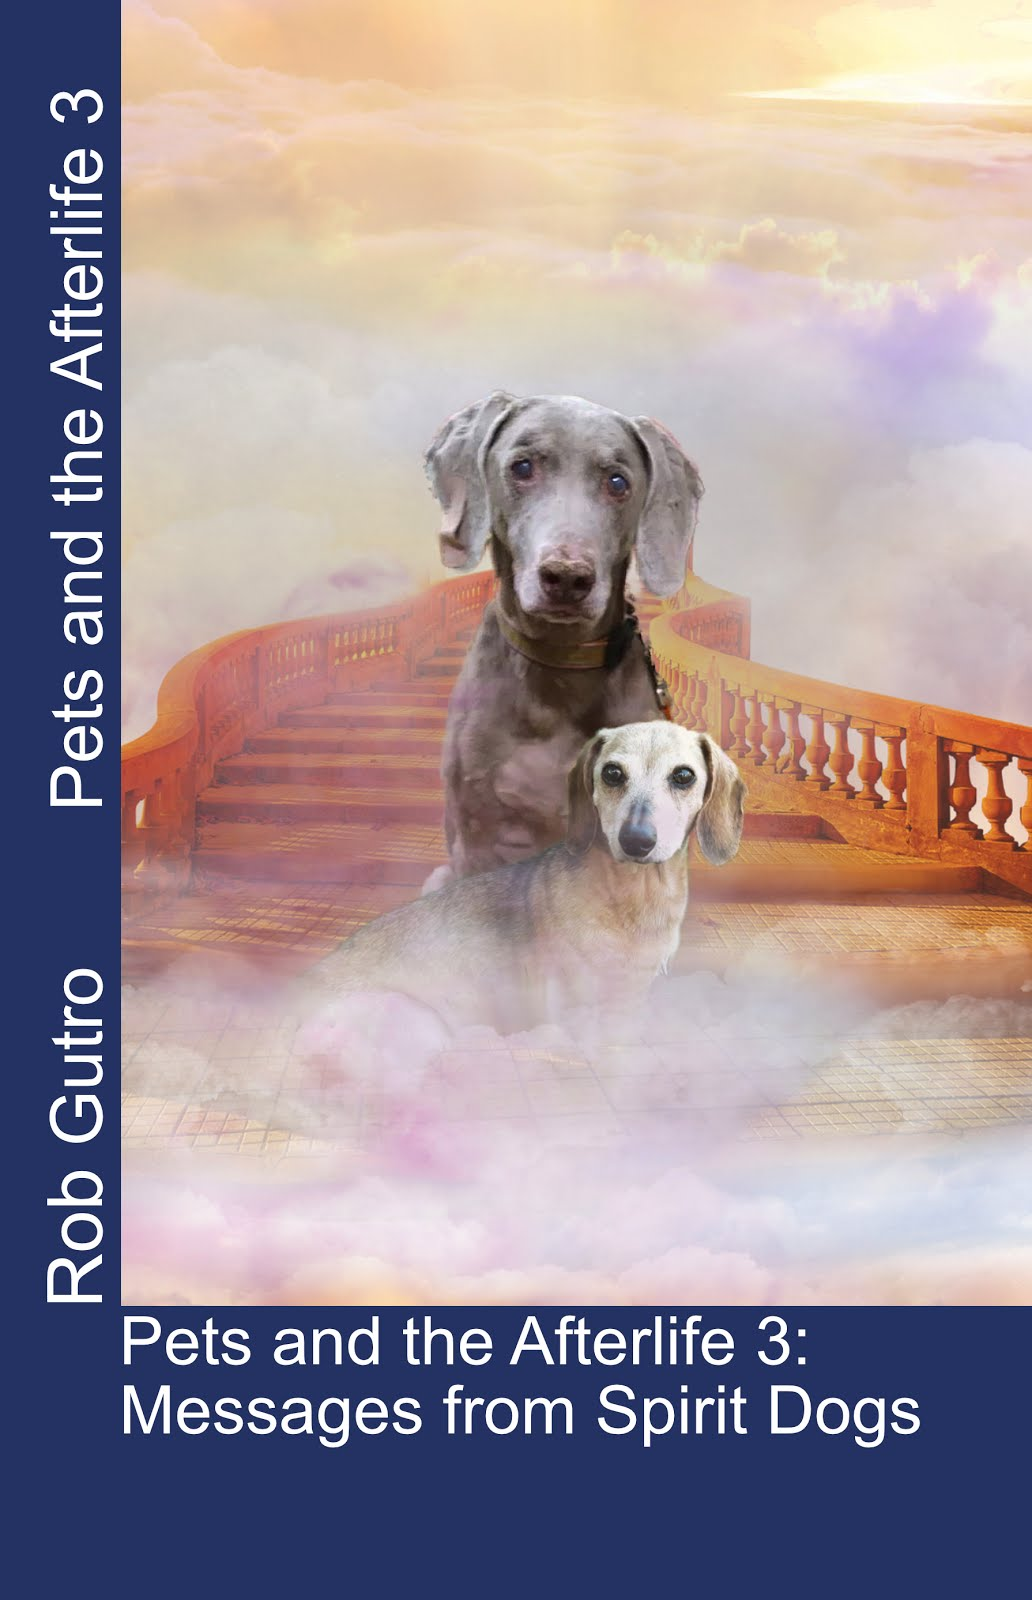 Just Published! Pets and the Afterlife 3: Messages from Spirit Dogs